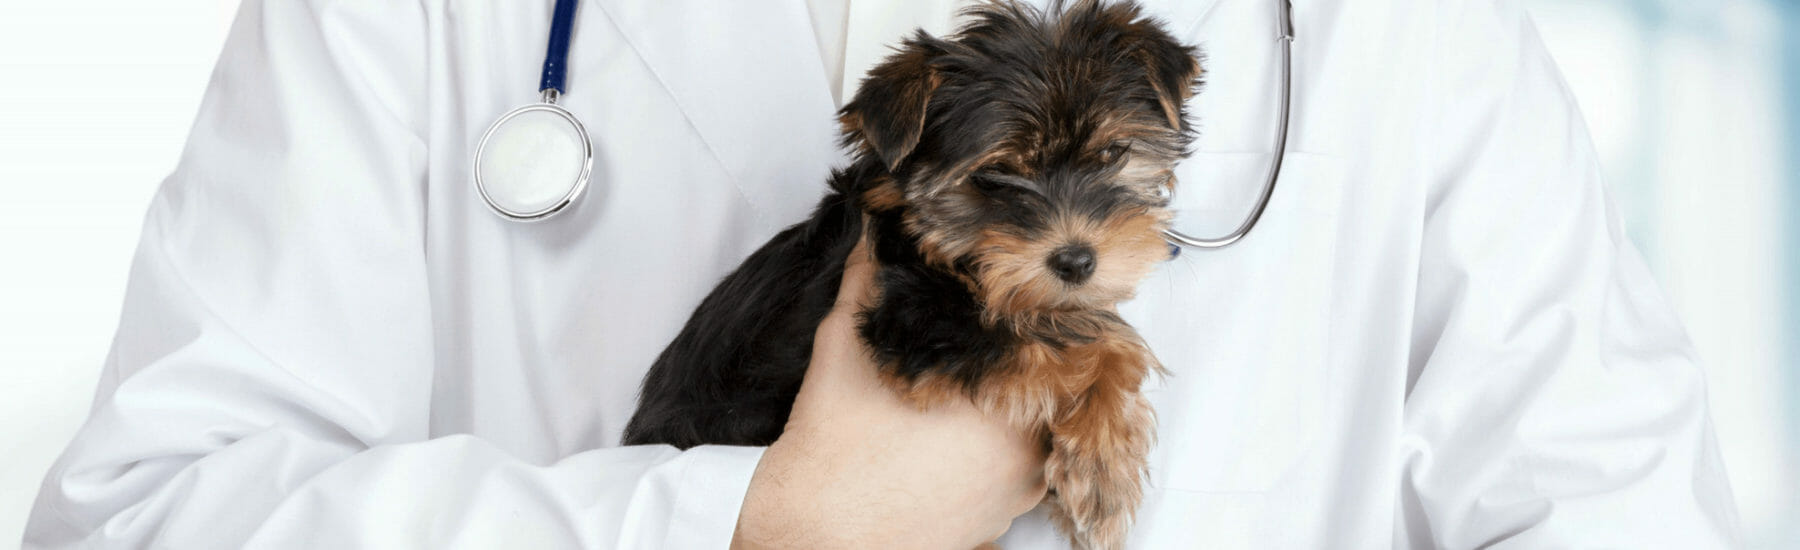 Spay and Neutering Services for Pets